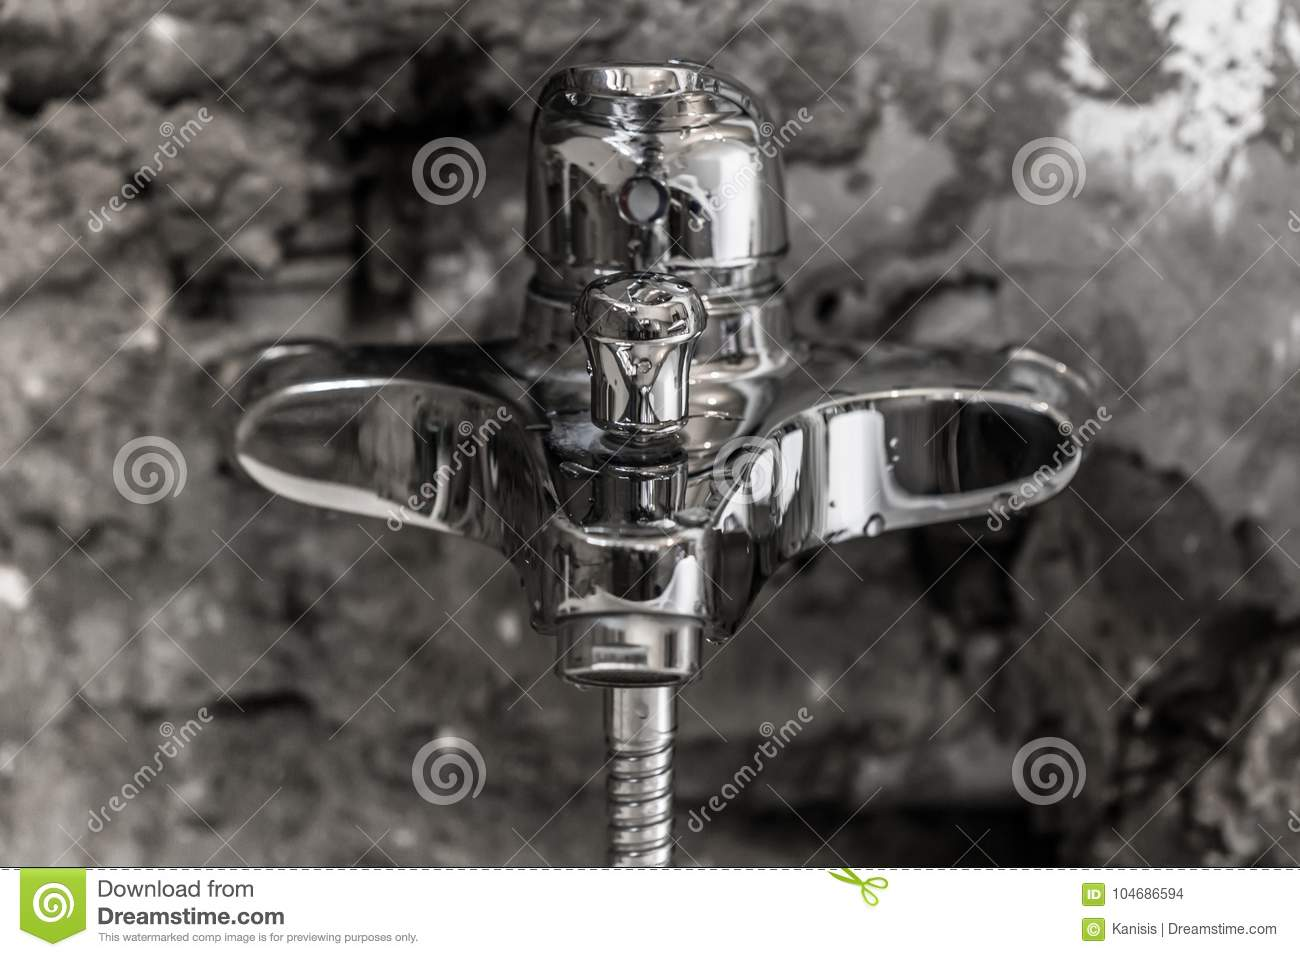 Clean Shiny Wet Metal Bathroom Water Faucet Stock Photo - Image of ...